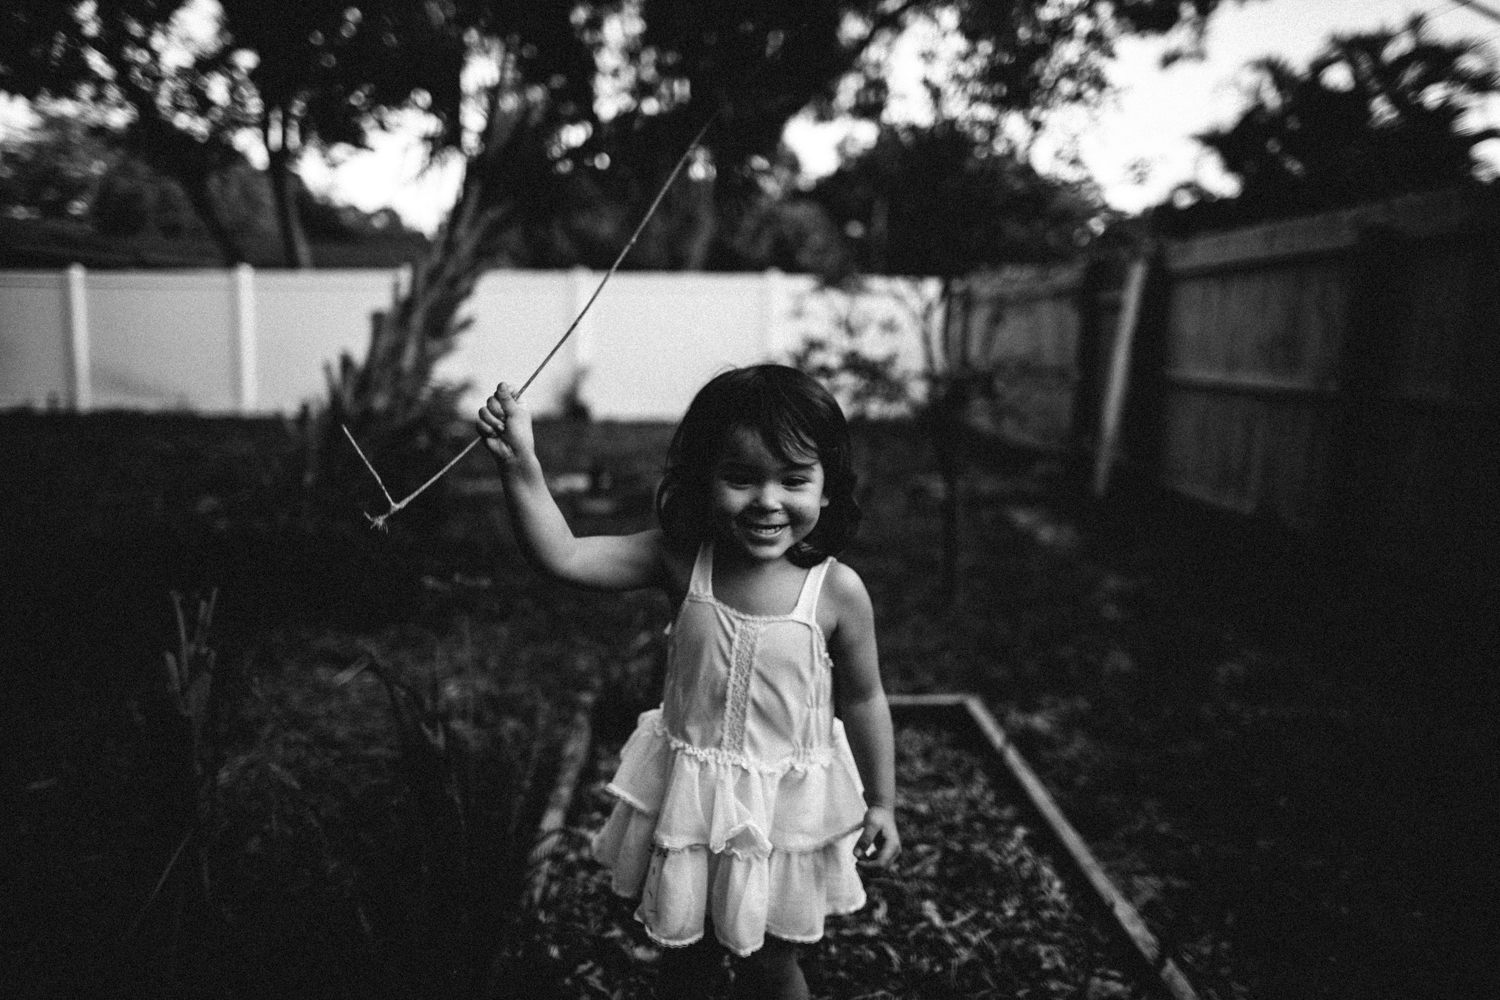 professional kid photos, lifestyle family photography near me in tampa fl